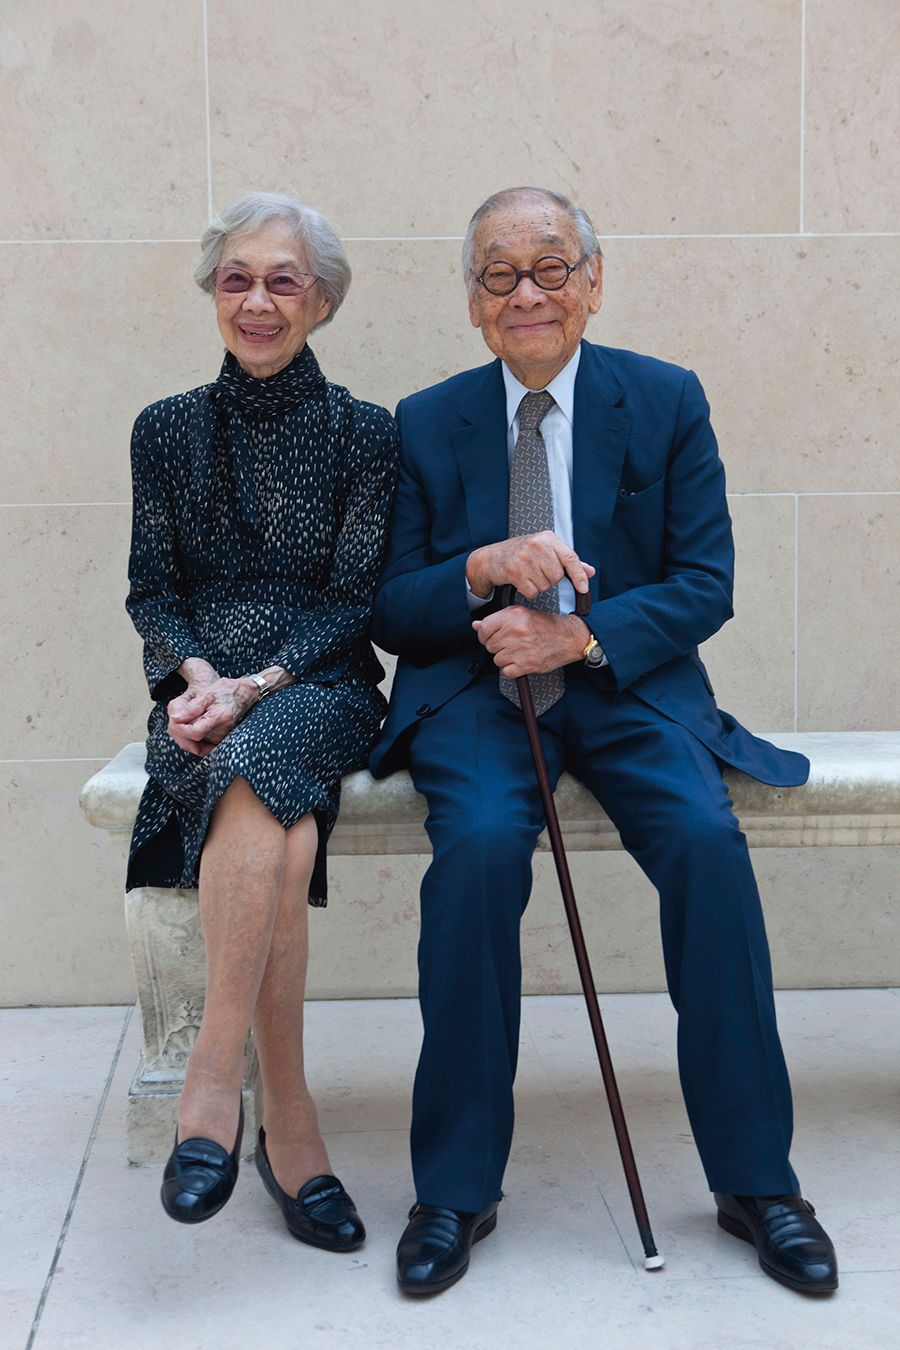 Eileen and I.M. Pei at the Musée du Louvre, Paris, 2009-2010. Photo: Frédéric REGLAIN / DIVERGENCE